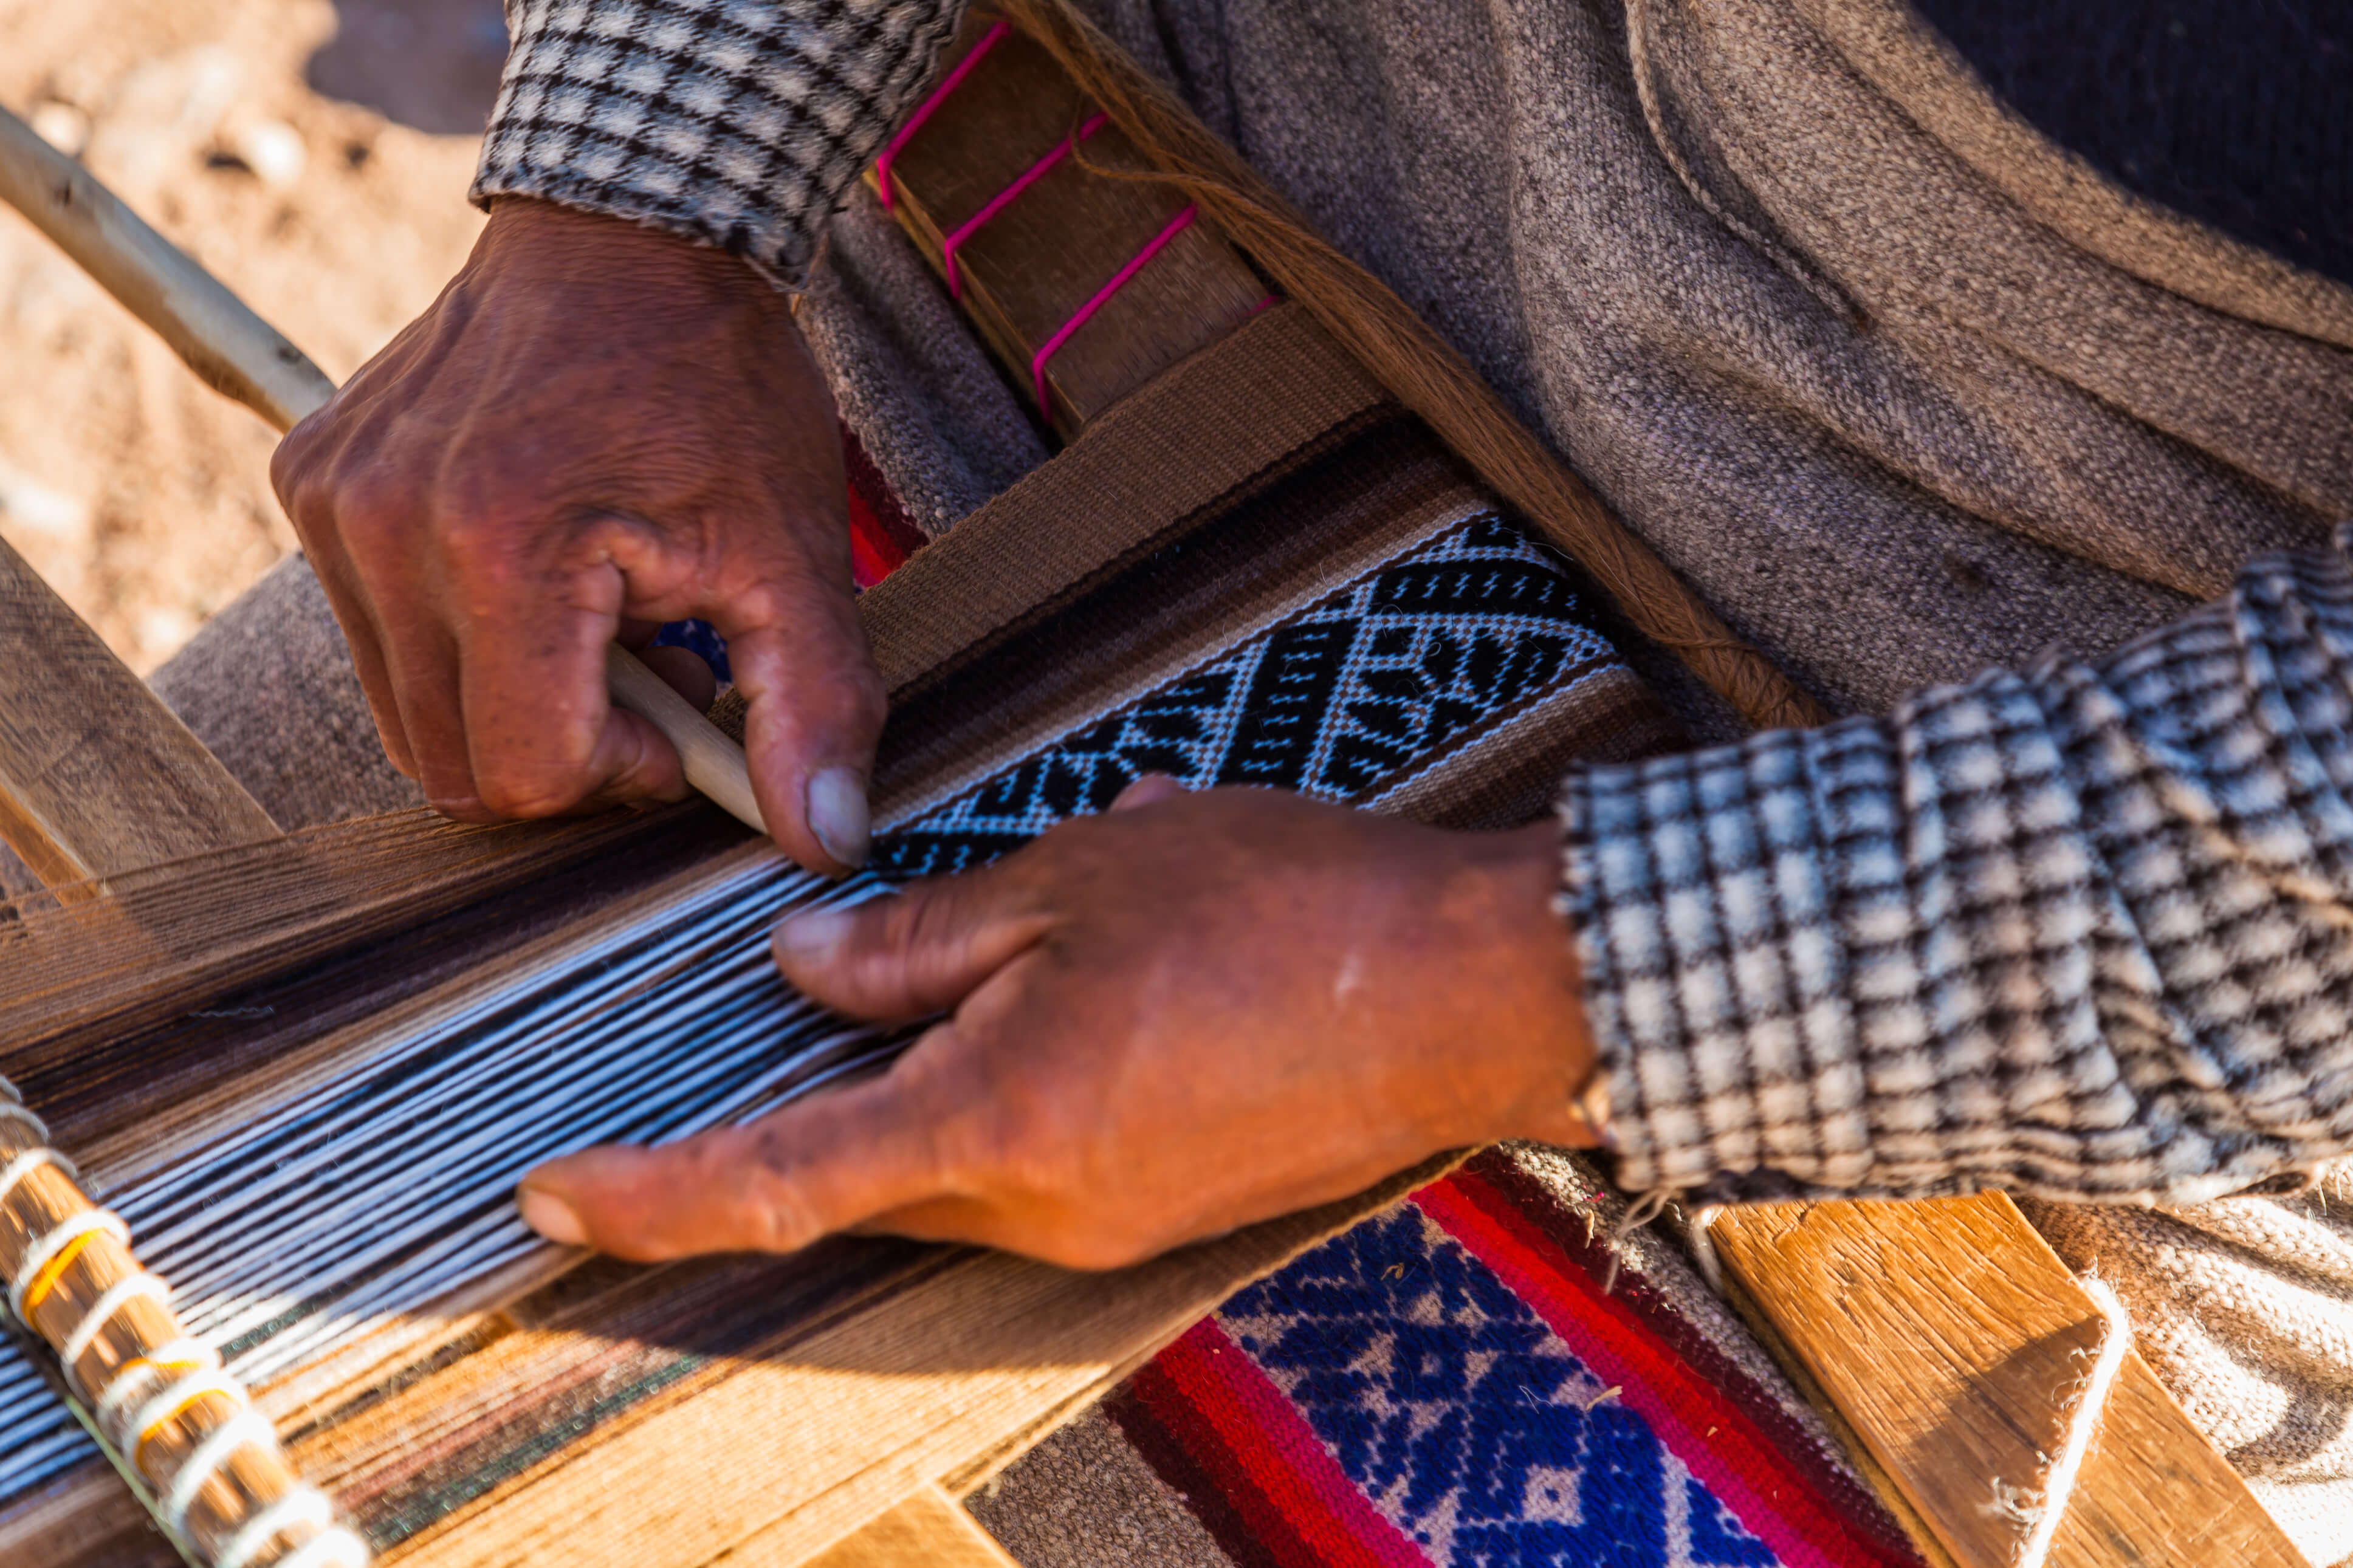 A Woman Weaver Creates an intricate design on her loom